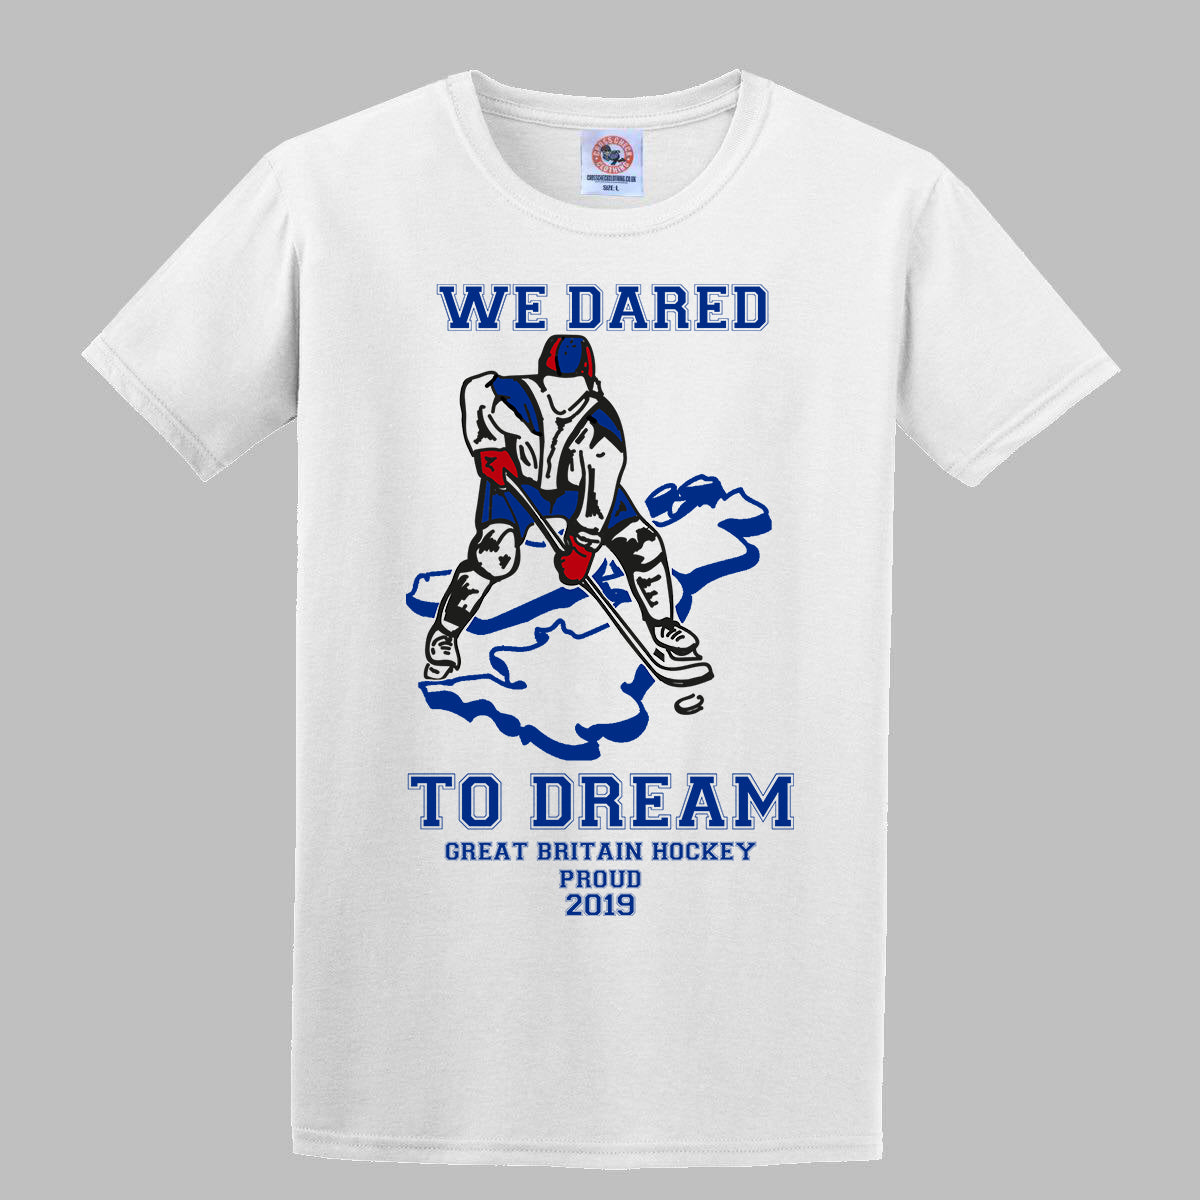 Dared To Dream Shirt